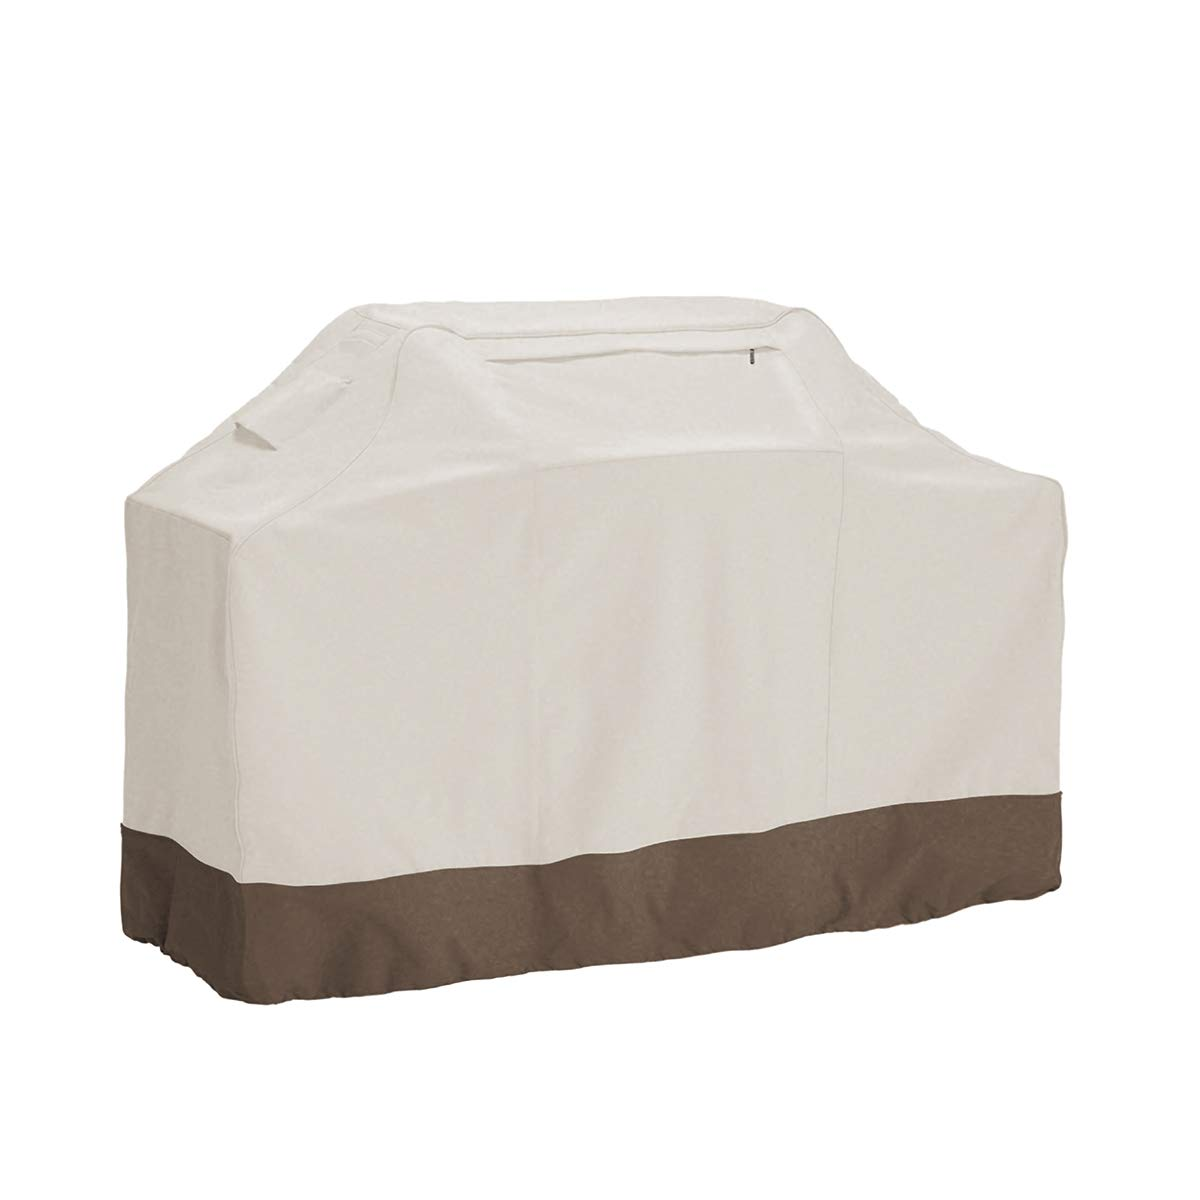 """PHI VILLA Waterproof Grill Cover, BBQ Grill Cover with Weather Resistant Fabric, Large, 65"""" Length"""